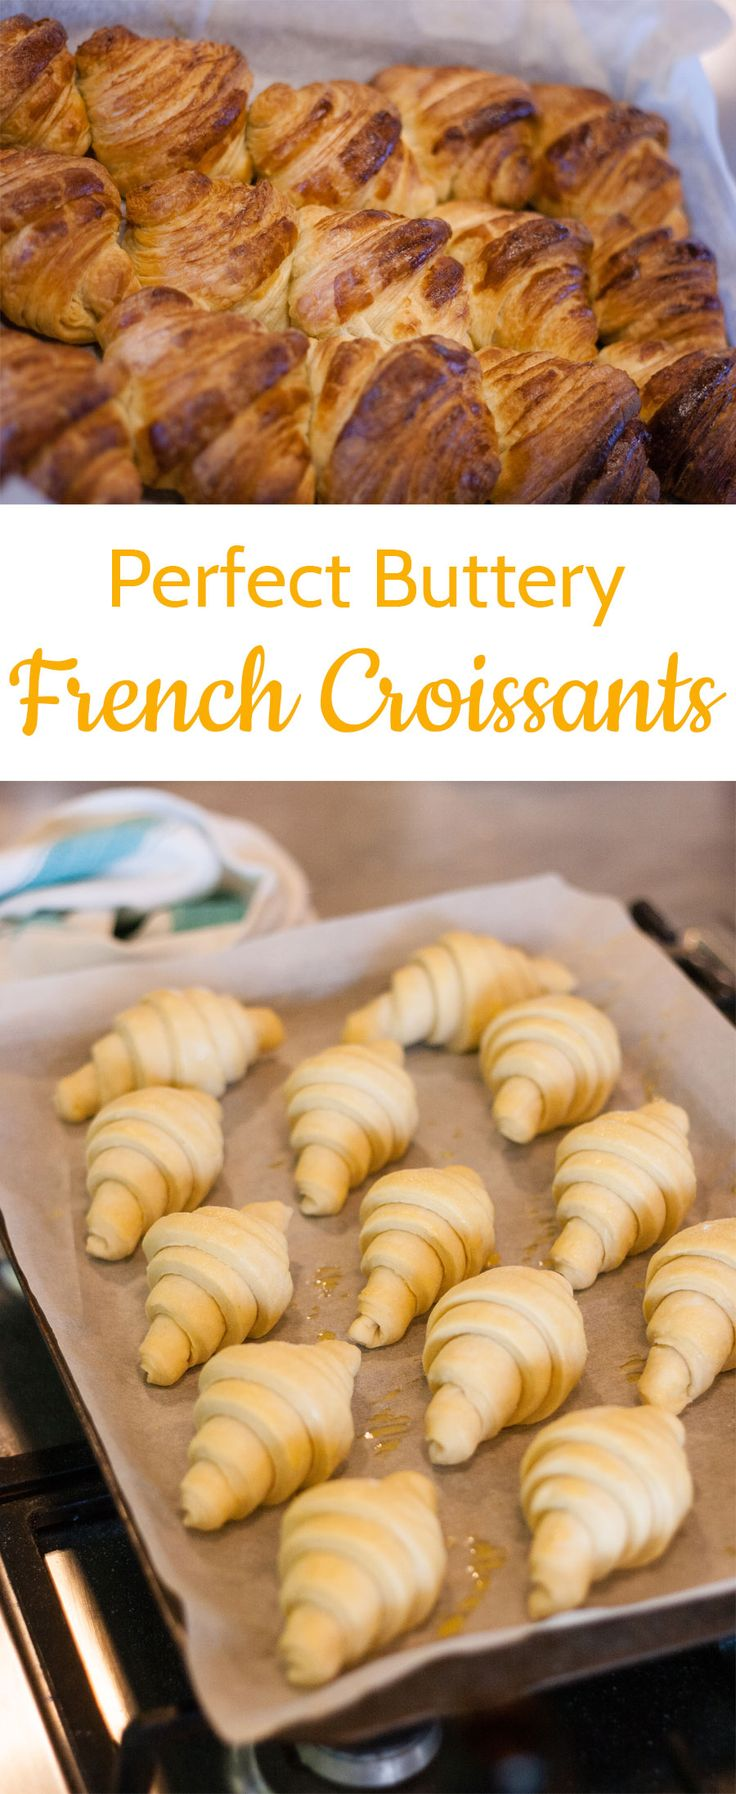 The secret to making French croissant dough which gives you perfect Parisian style flaky buttery croissants.